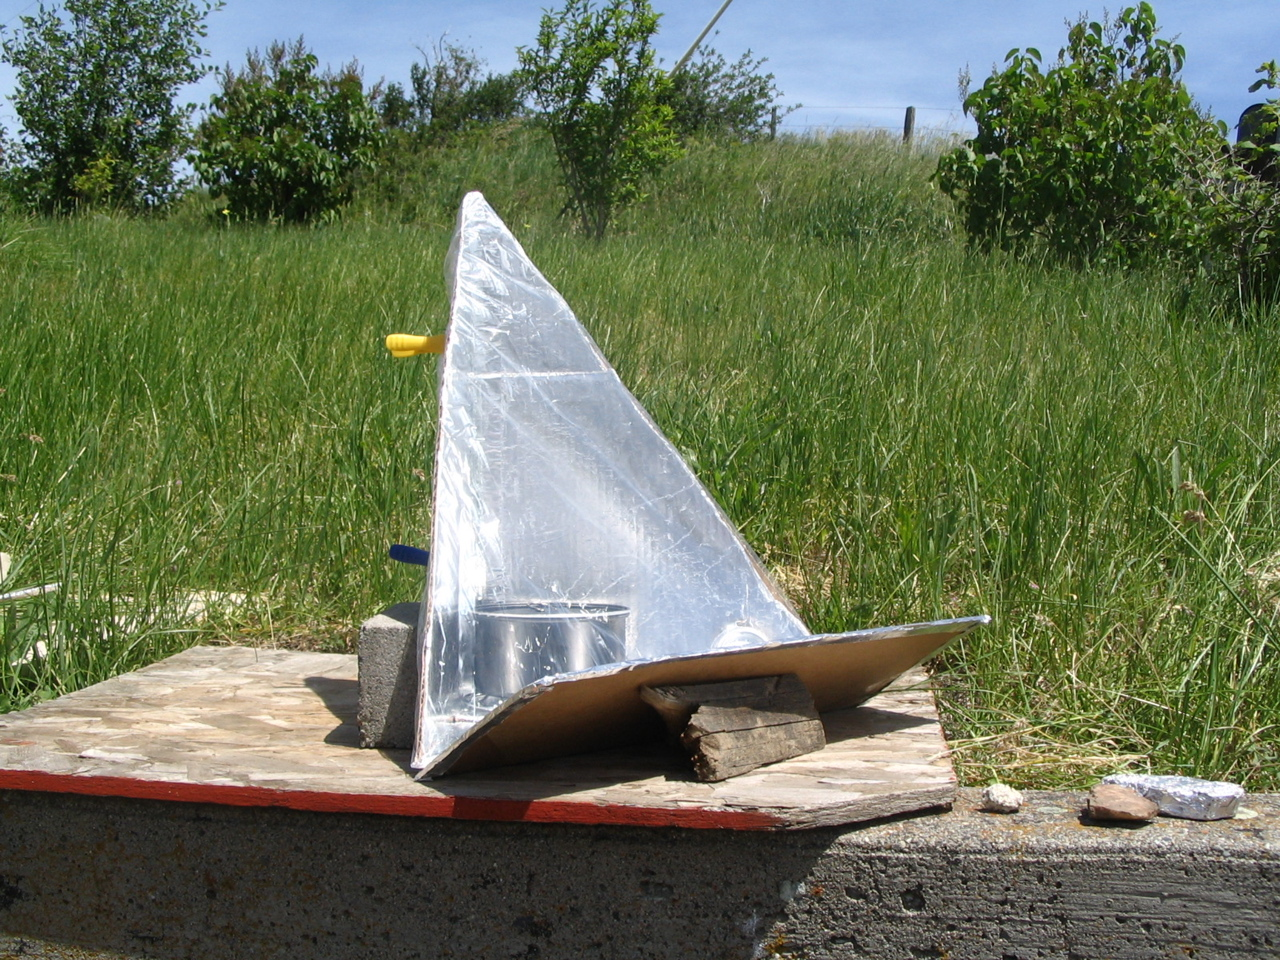 EZ-3 Solar Cooker | Solar Cooking | FANDOM powered by Wikia